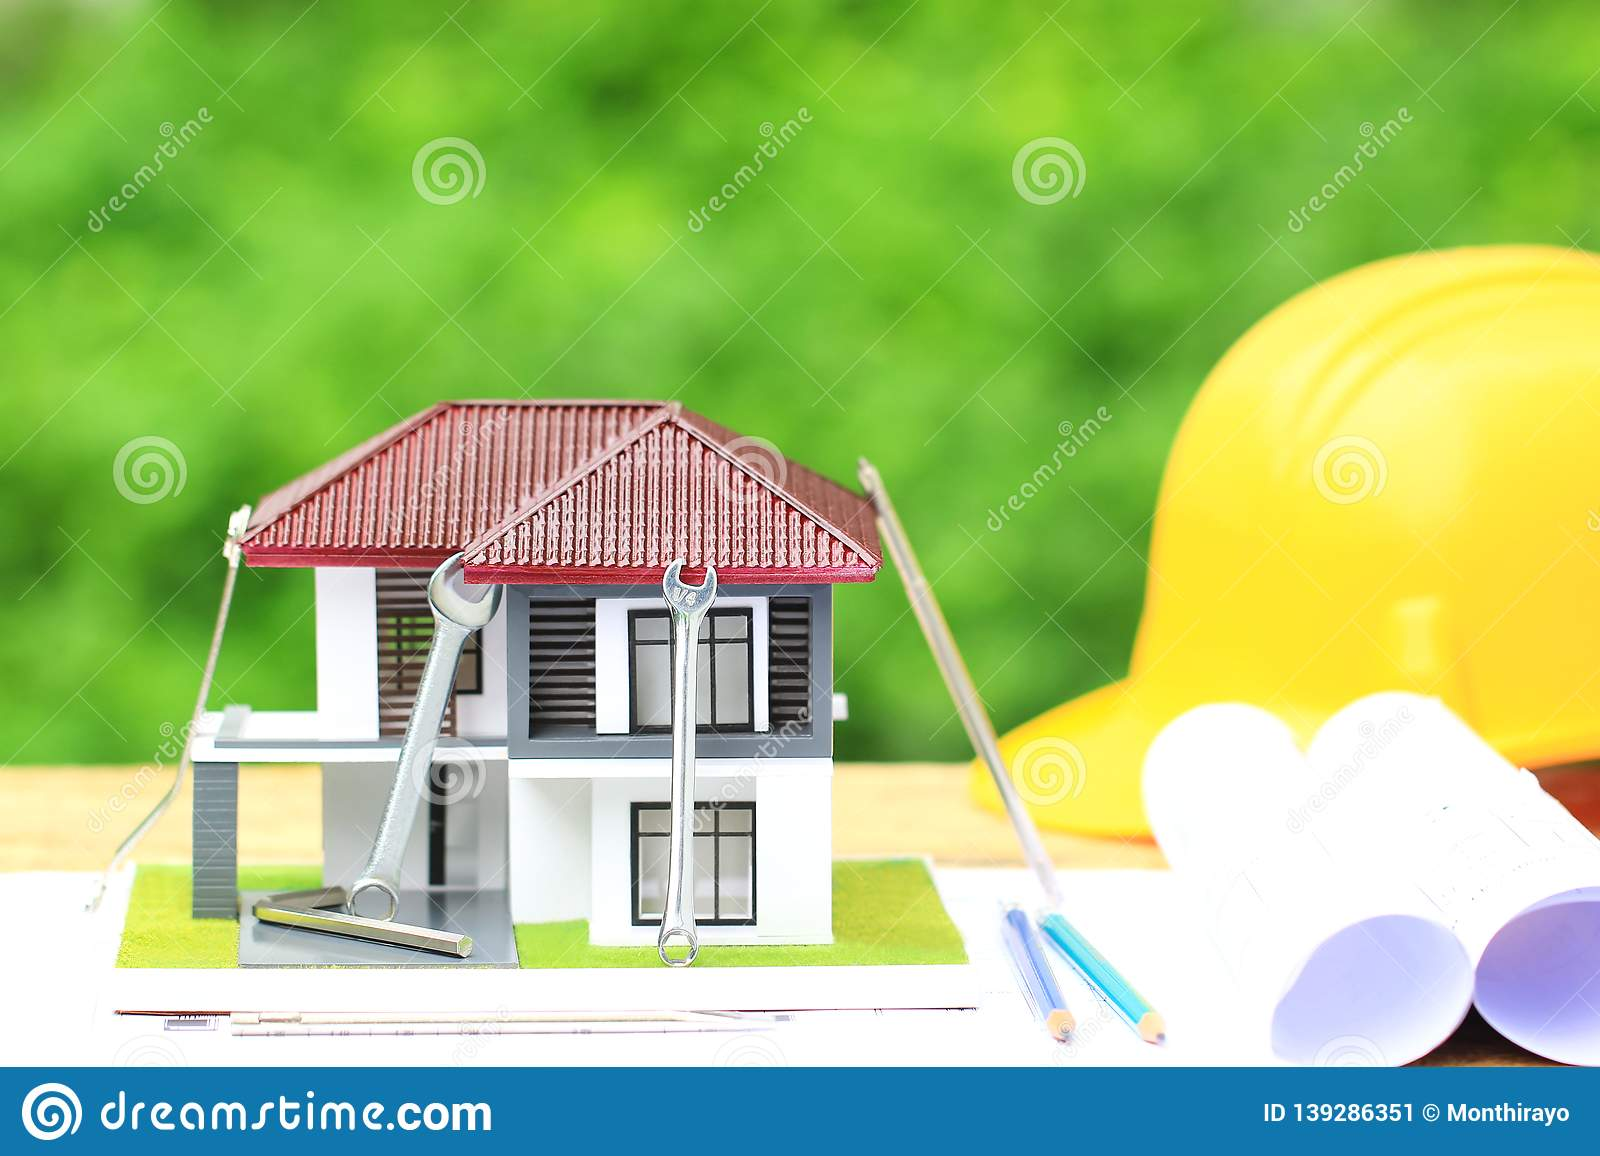 Model house and construction tools with Yellow helmets and architect rolls plans on natural green background, Repair maintenance